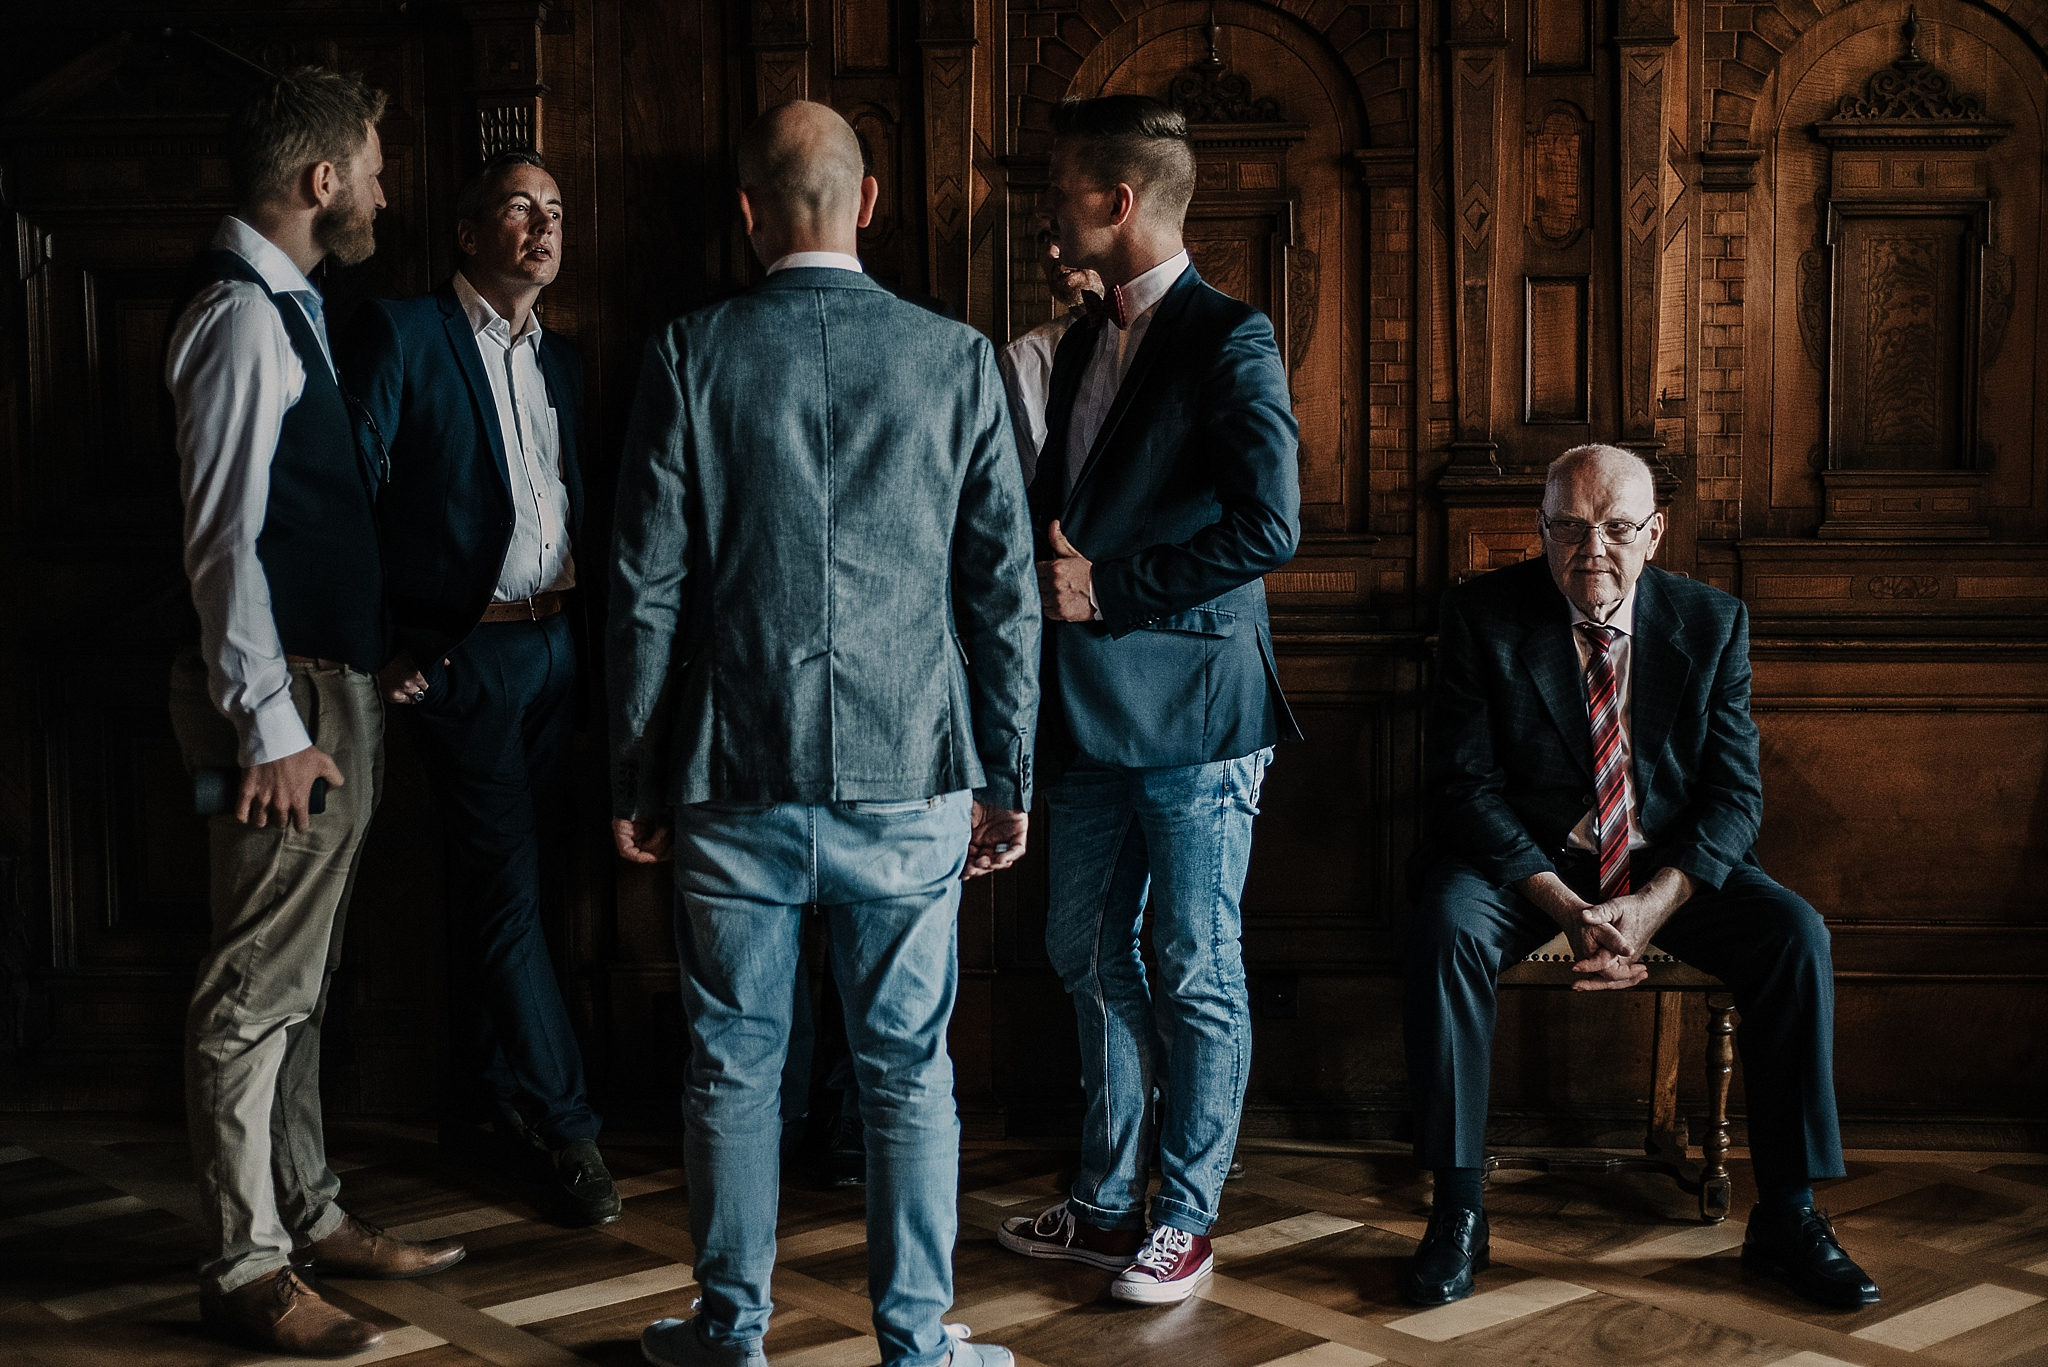 luzern lucerne standesamtliche hochzeit schweiz switzerland standesamt see civil wedding gay homosexual lgbt queer photographer hochzeitsfotograf münchen munich photos